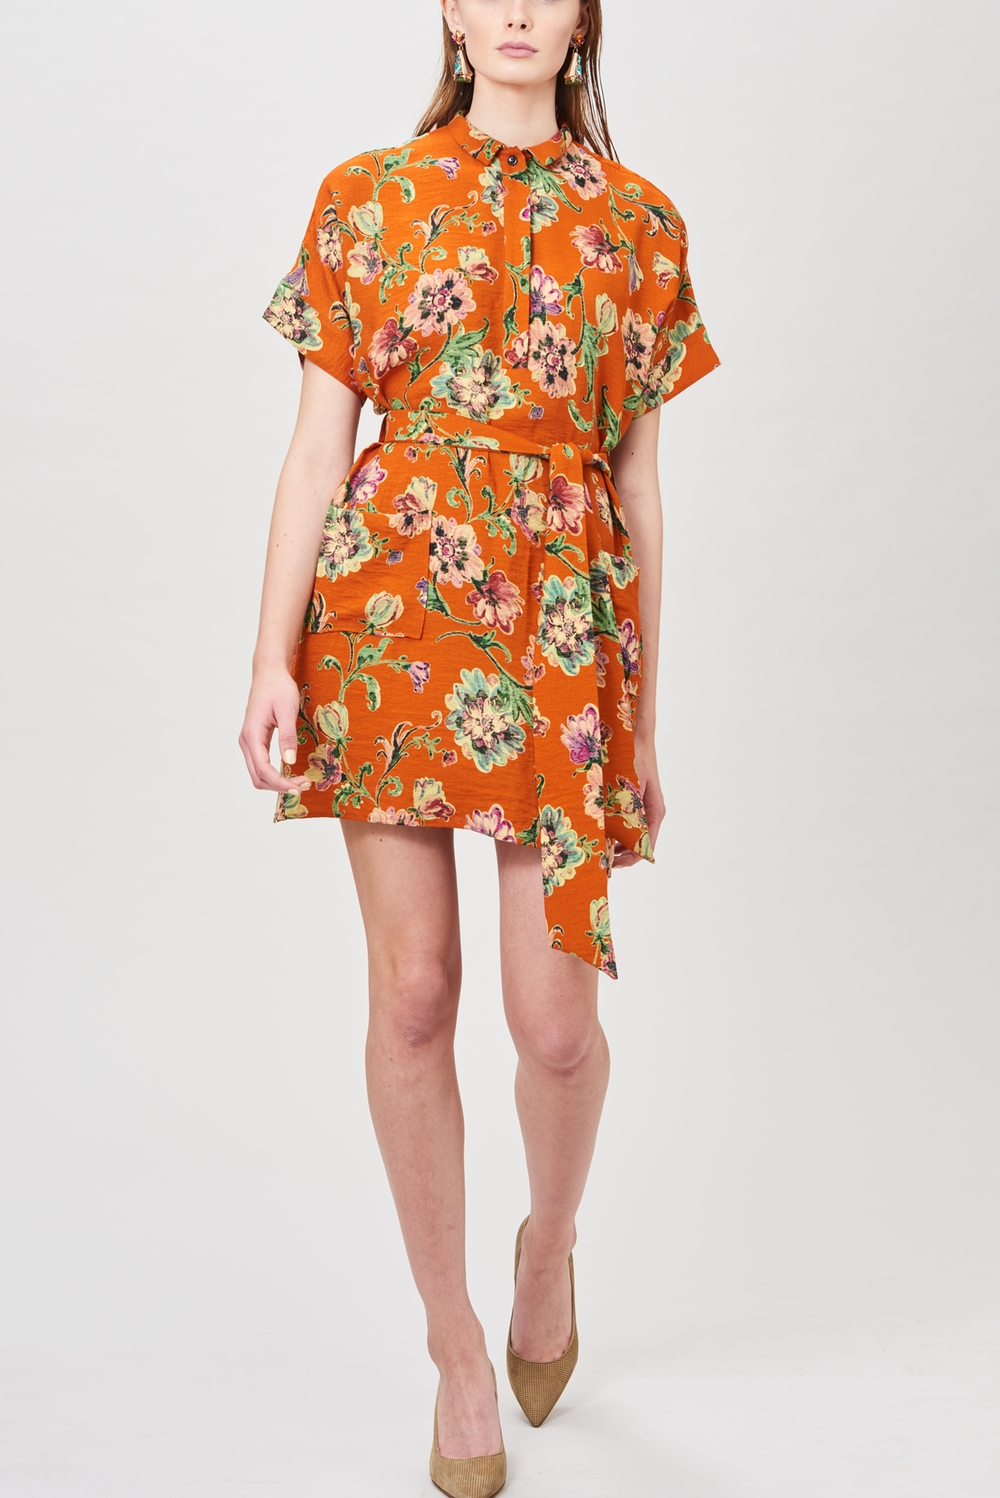 Billie & Me Week Short Dress Orange Dahlia